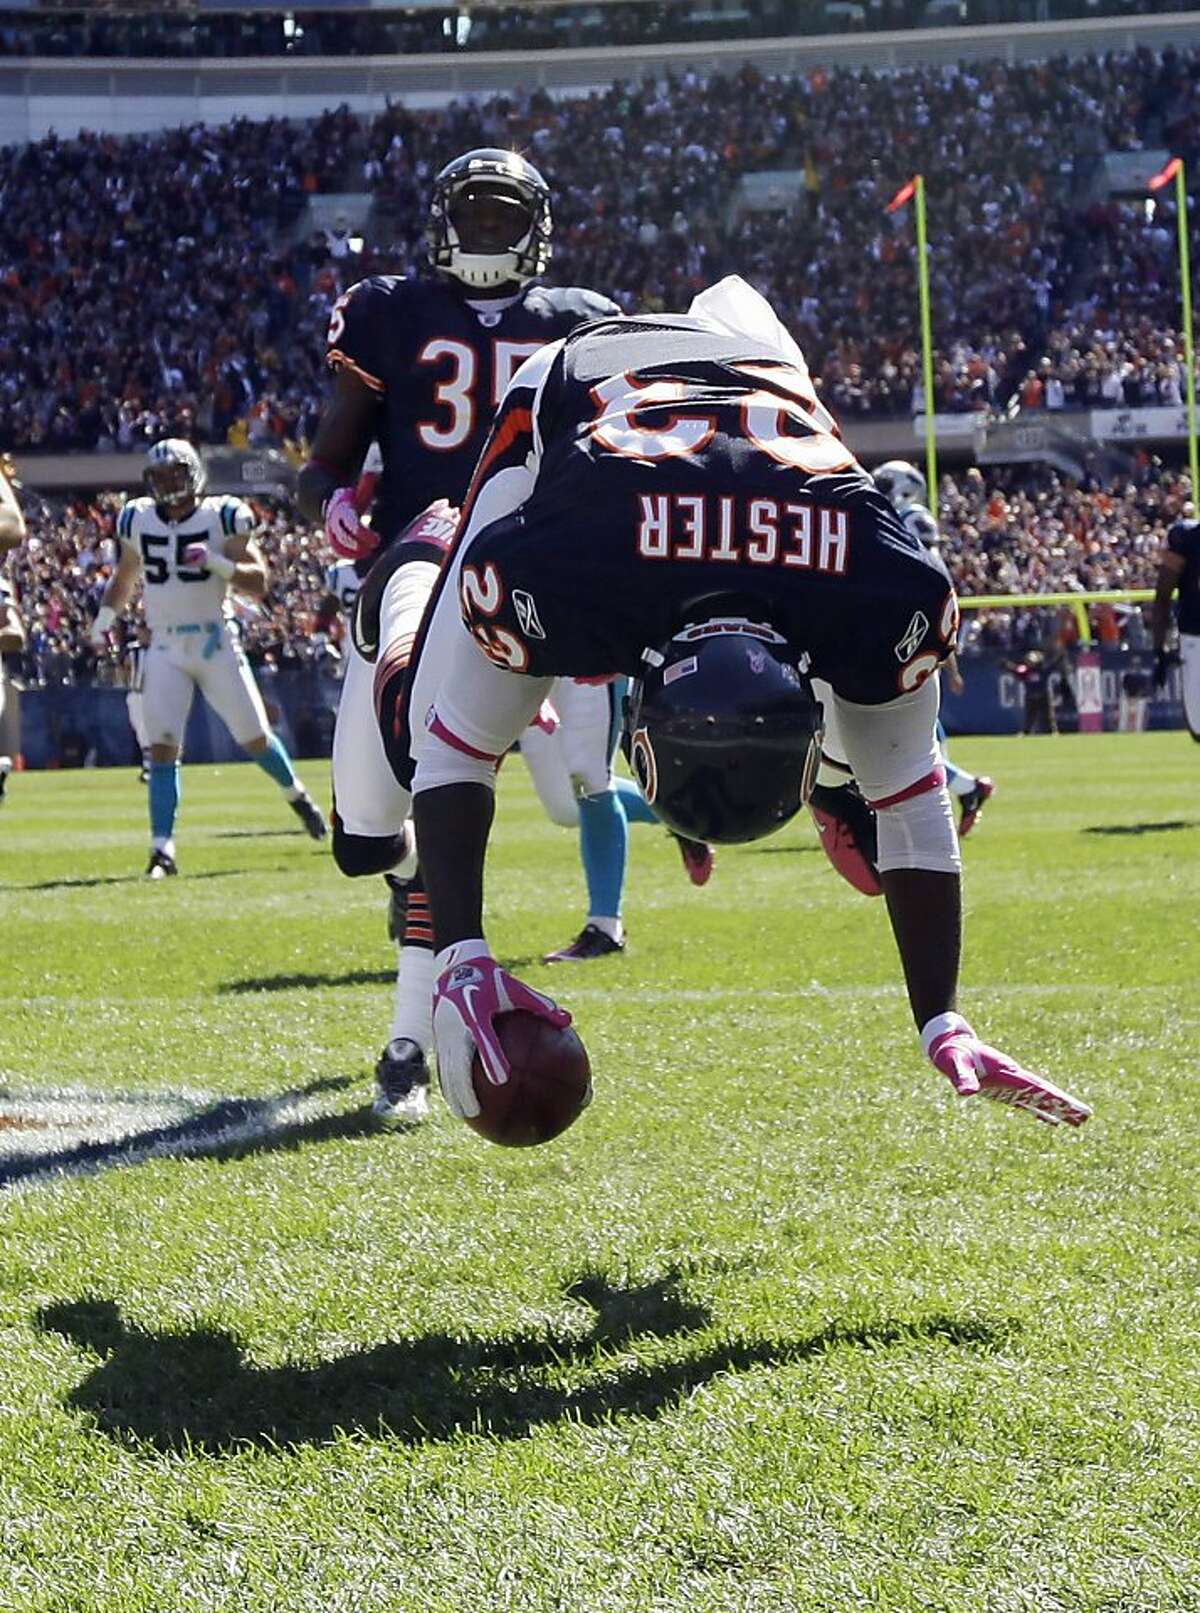 Chicago Bears wide receiver Devin Hester (23) flips in the end zone after returning a punt 69 yards for a touchdown against the Carolina Panthers in the first half of an NFL football game in Chicago, Sunday, Oct. 2, 2011. (AP Photo/Nam Y. Huh)